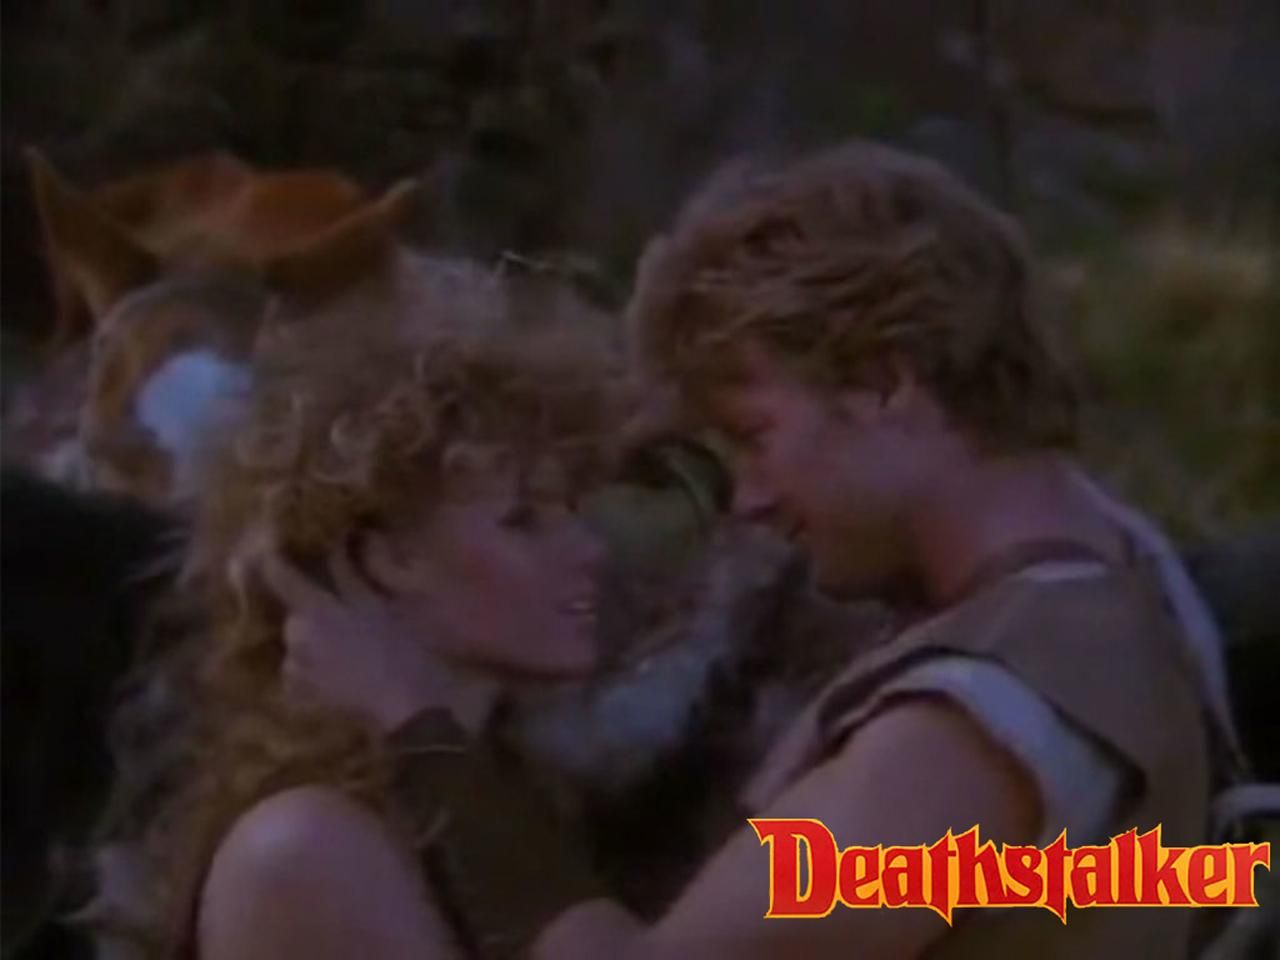 John Allen Nelson as the titular character Deathstalker and Claudia Inchaurregui as Marinda in Deathstalker III: The Warriors from Hell